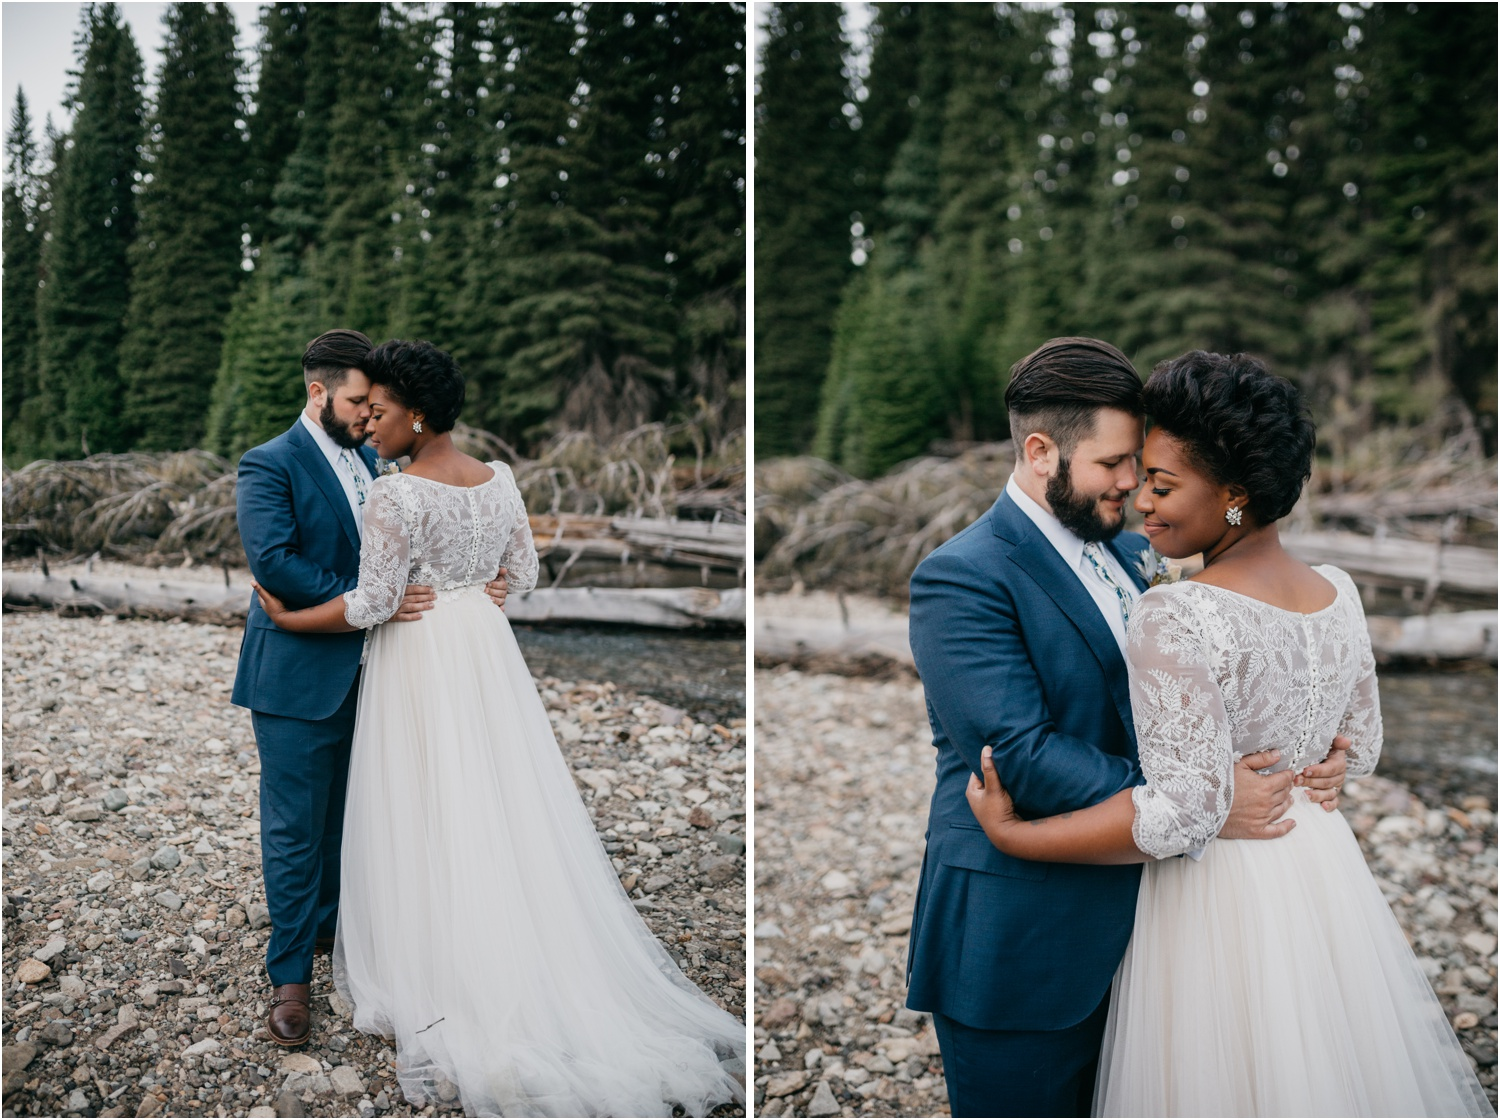 lovestoriesco-amber-phinisee-seattle-mount-rainier-elopement_0078.jpg